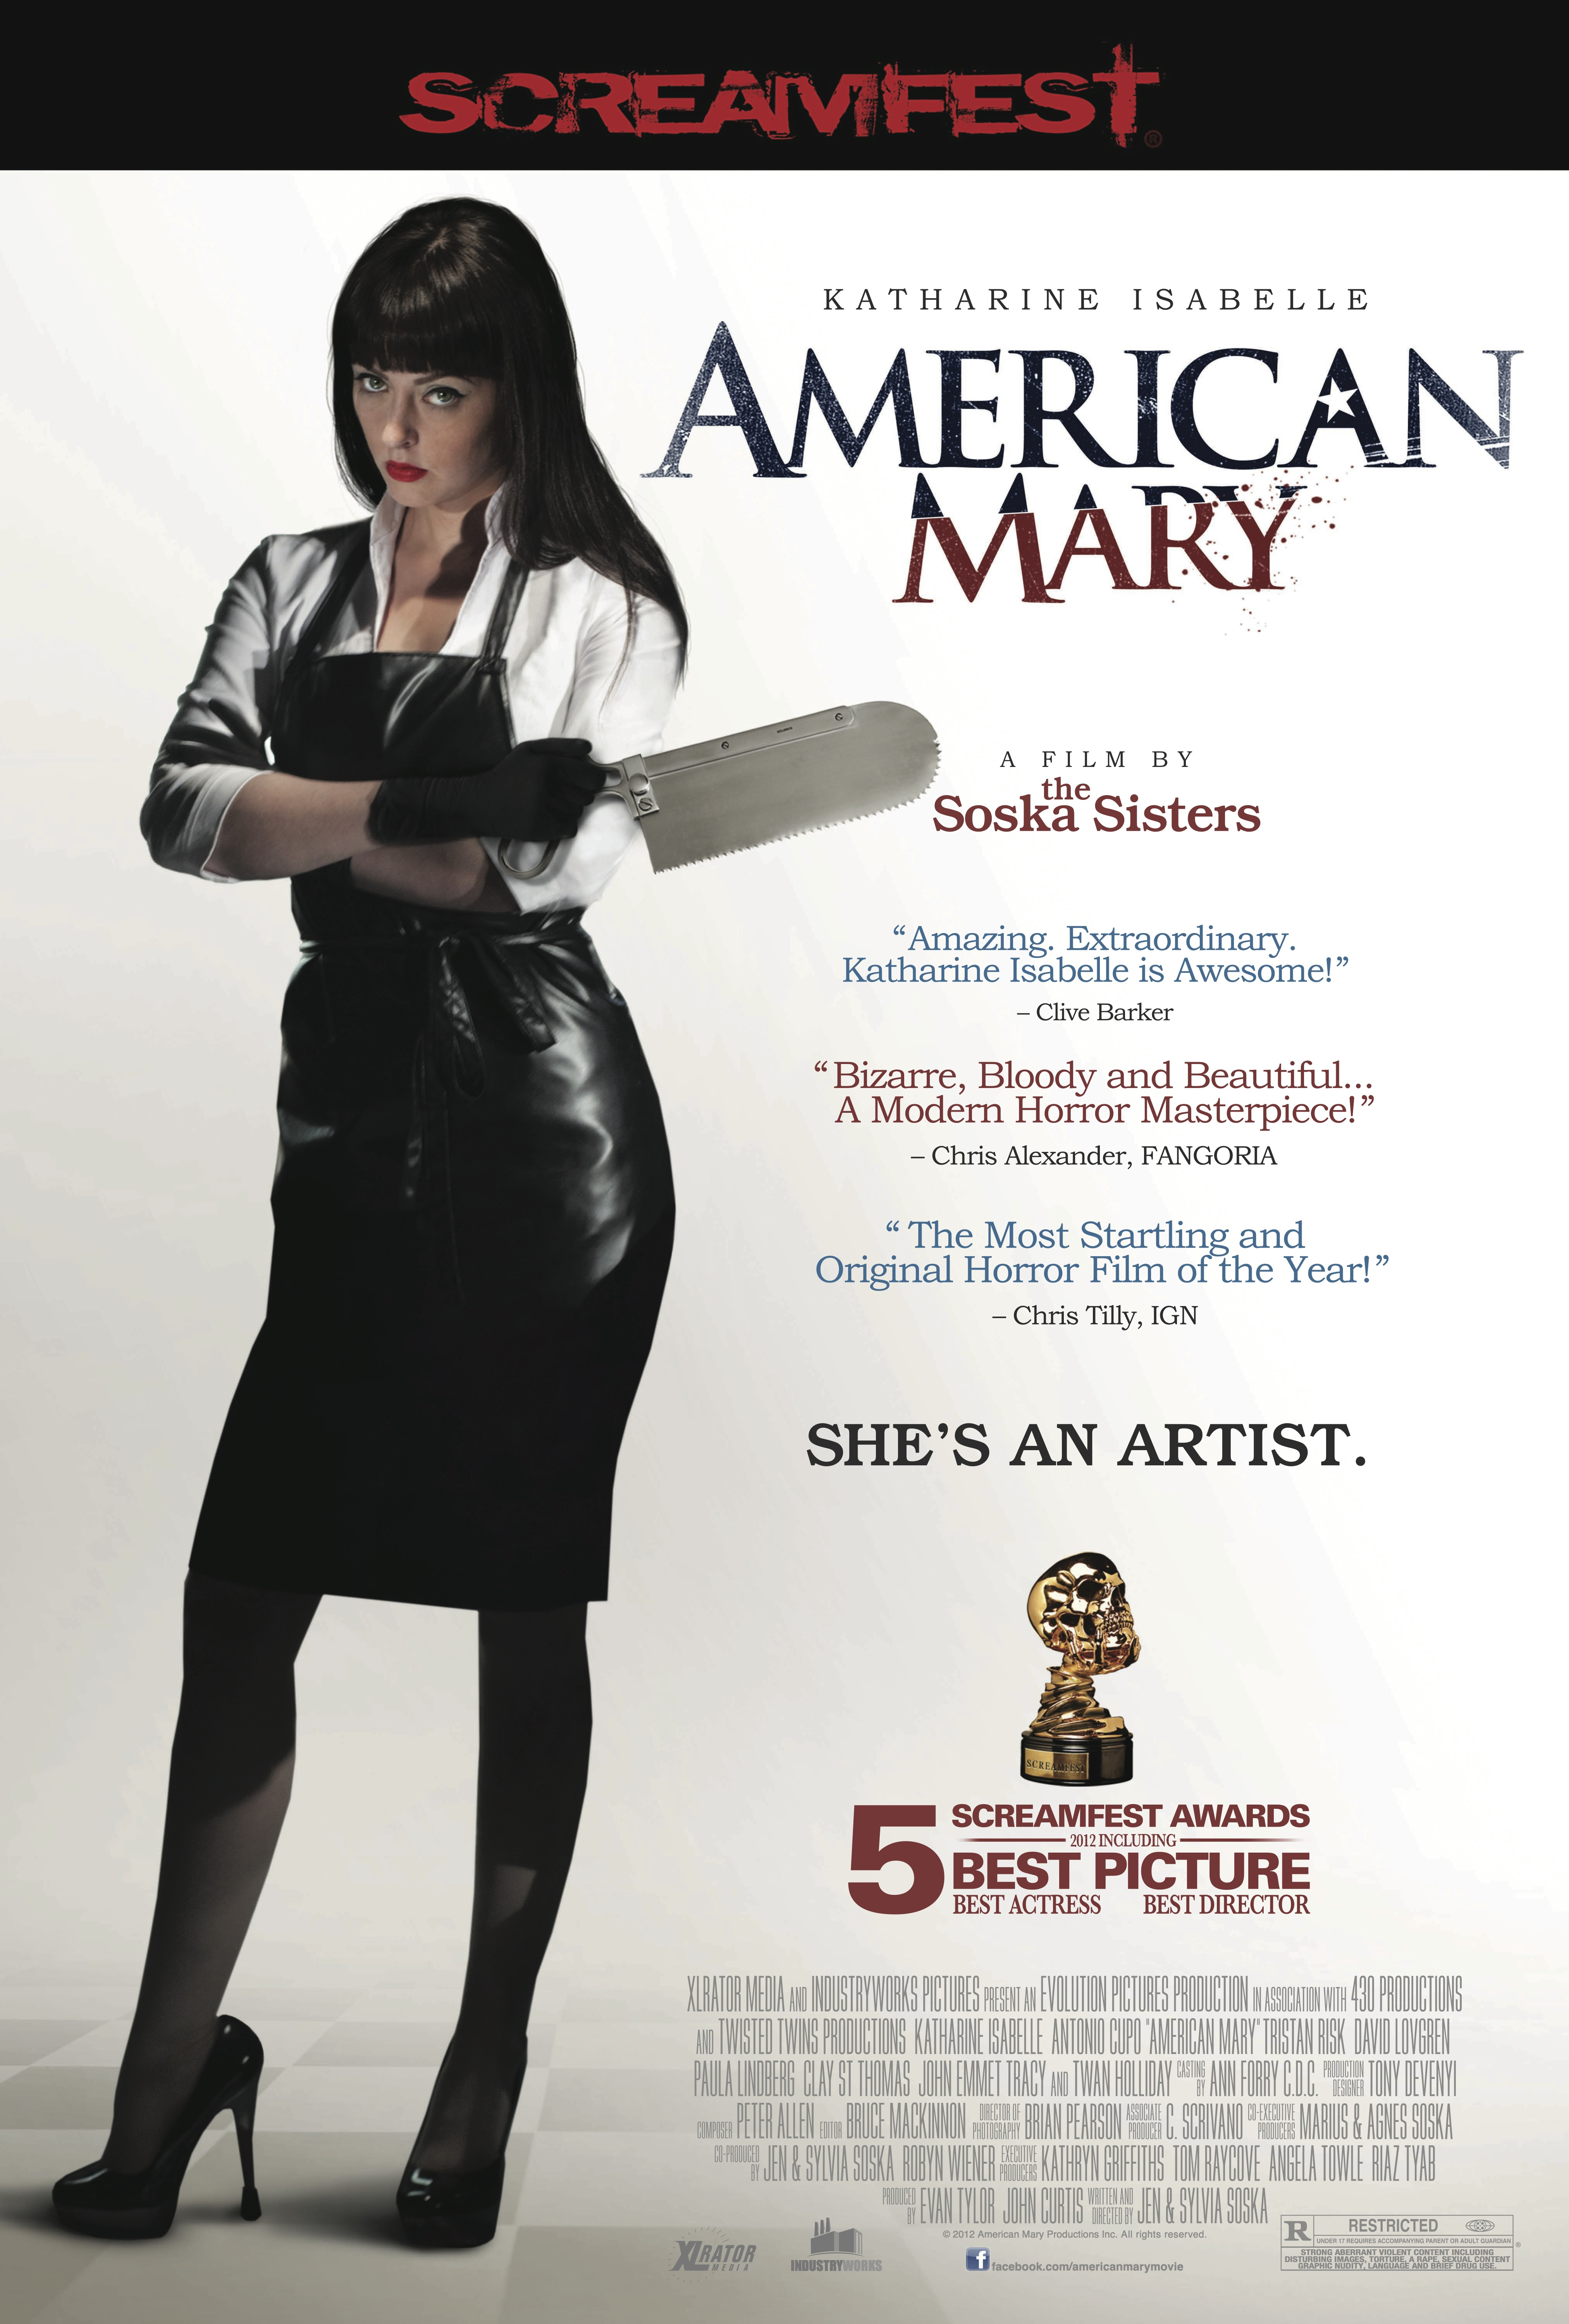 American Mary_Poster 02 copy